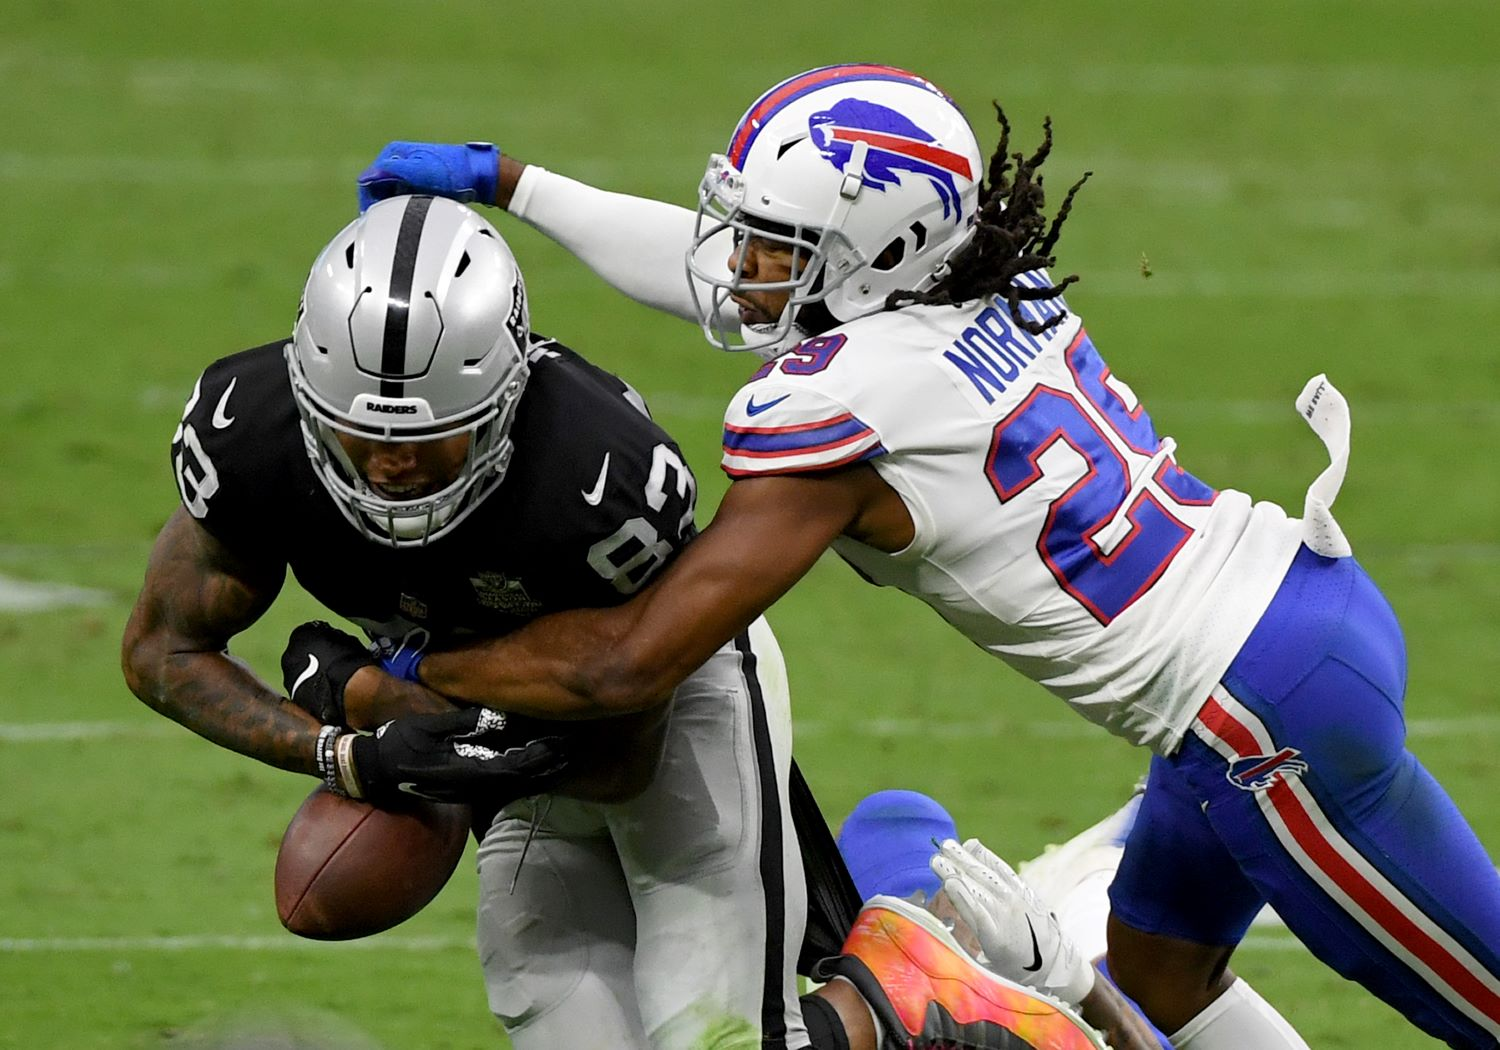 With cornerback Josh Norman testing positive for COVID-19, the Buffalo Bills will have a difficult time slowing down the Cardinals on Sunday.